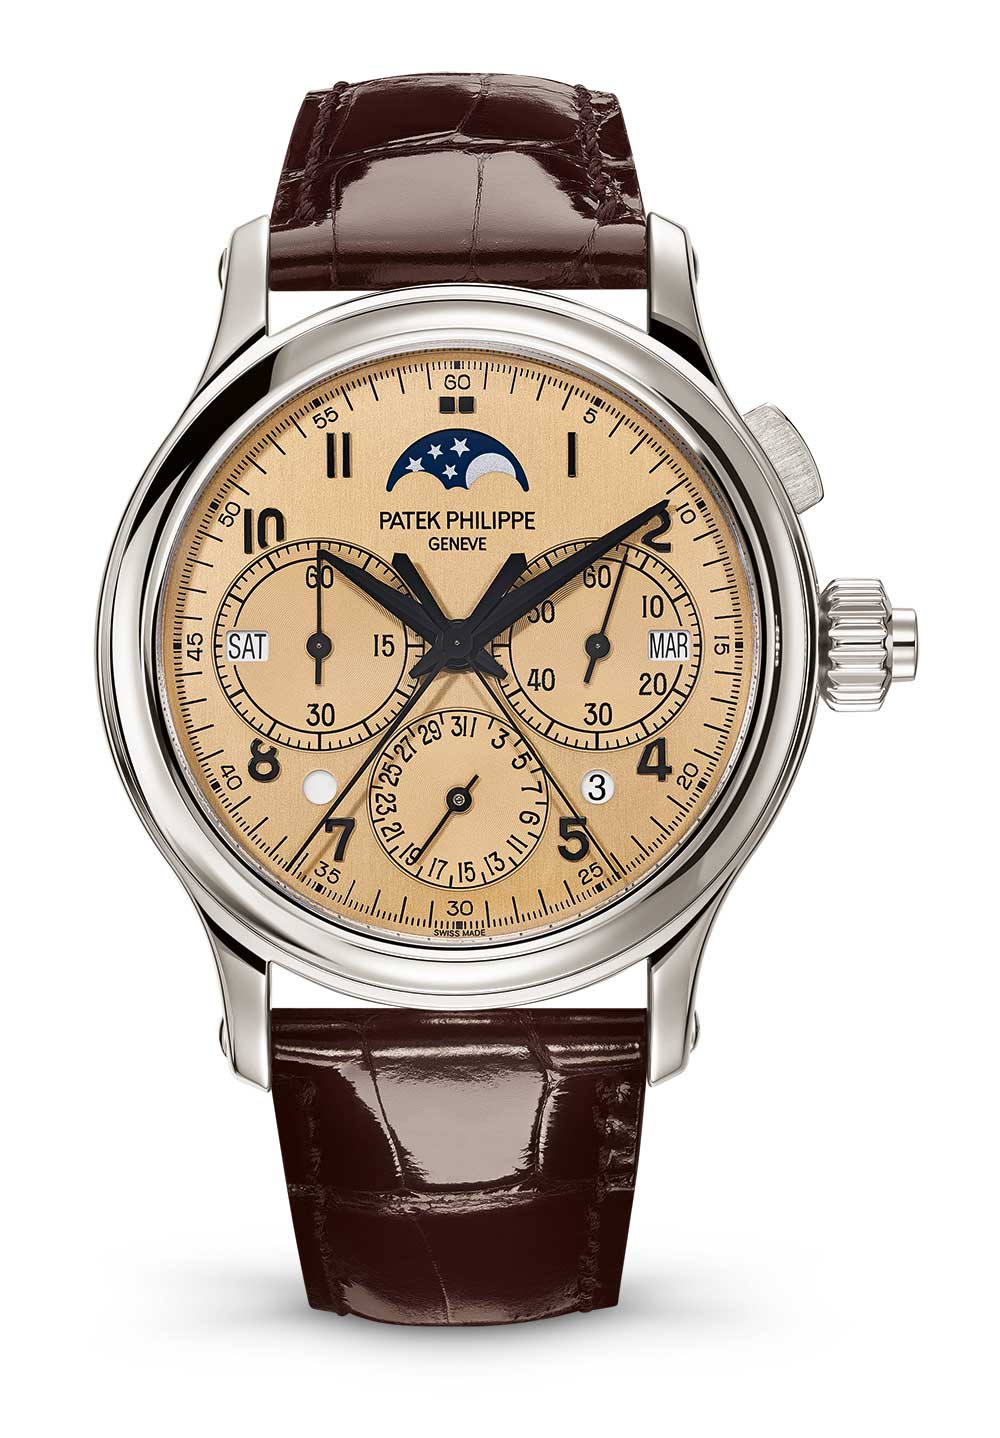 Patek Philippe 5372 split-seconds chronograph and perpetual calendar version with beige dial